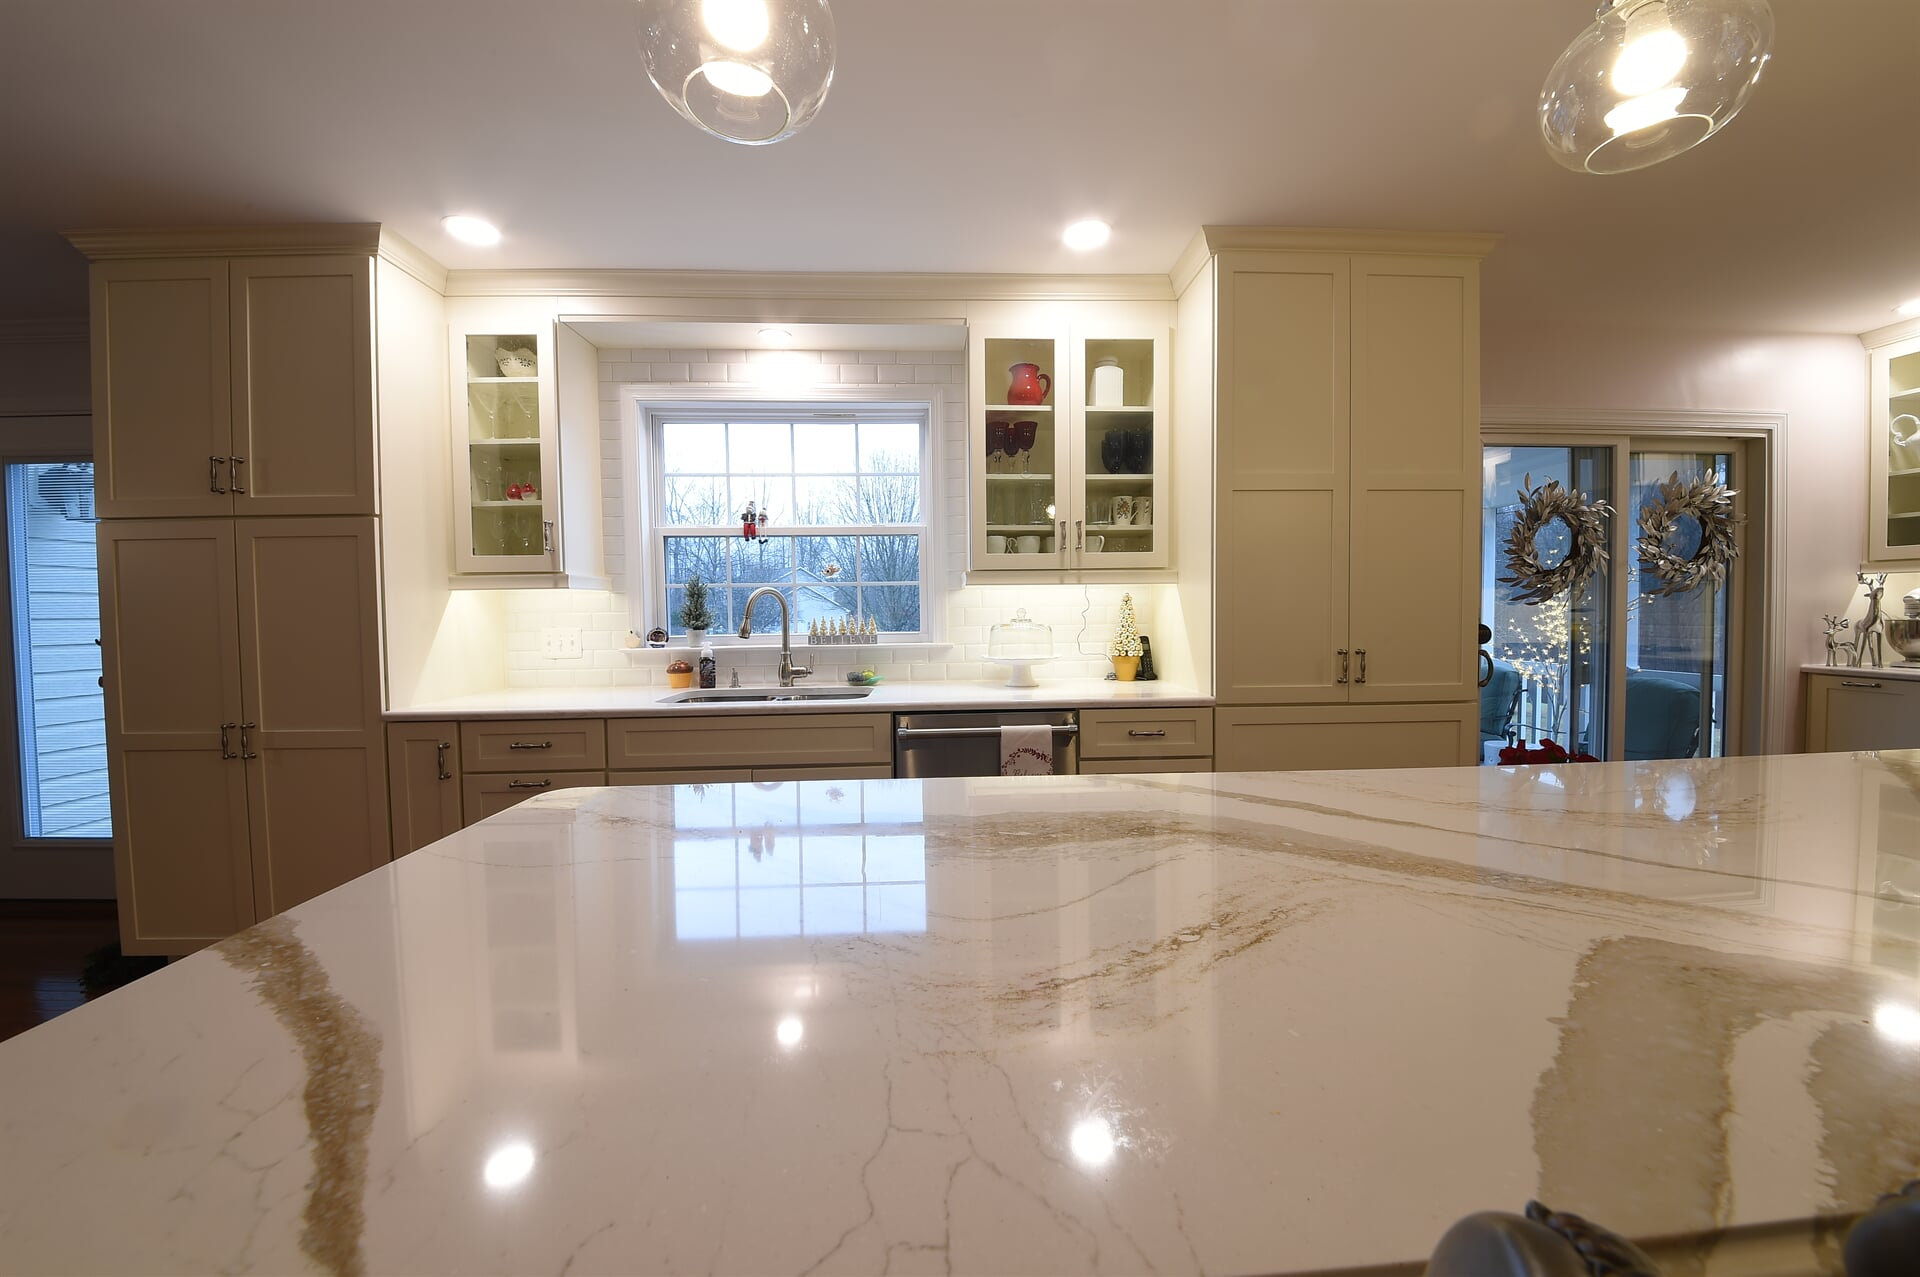 Kitchen remodeling in North Beach, MD by Southern Maryland Kitchen Bath Floors & Design